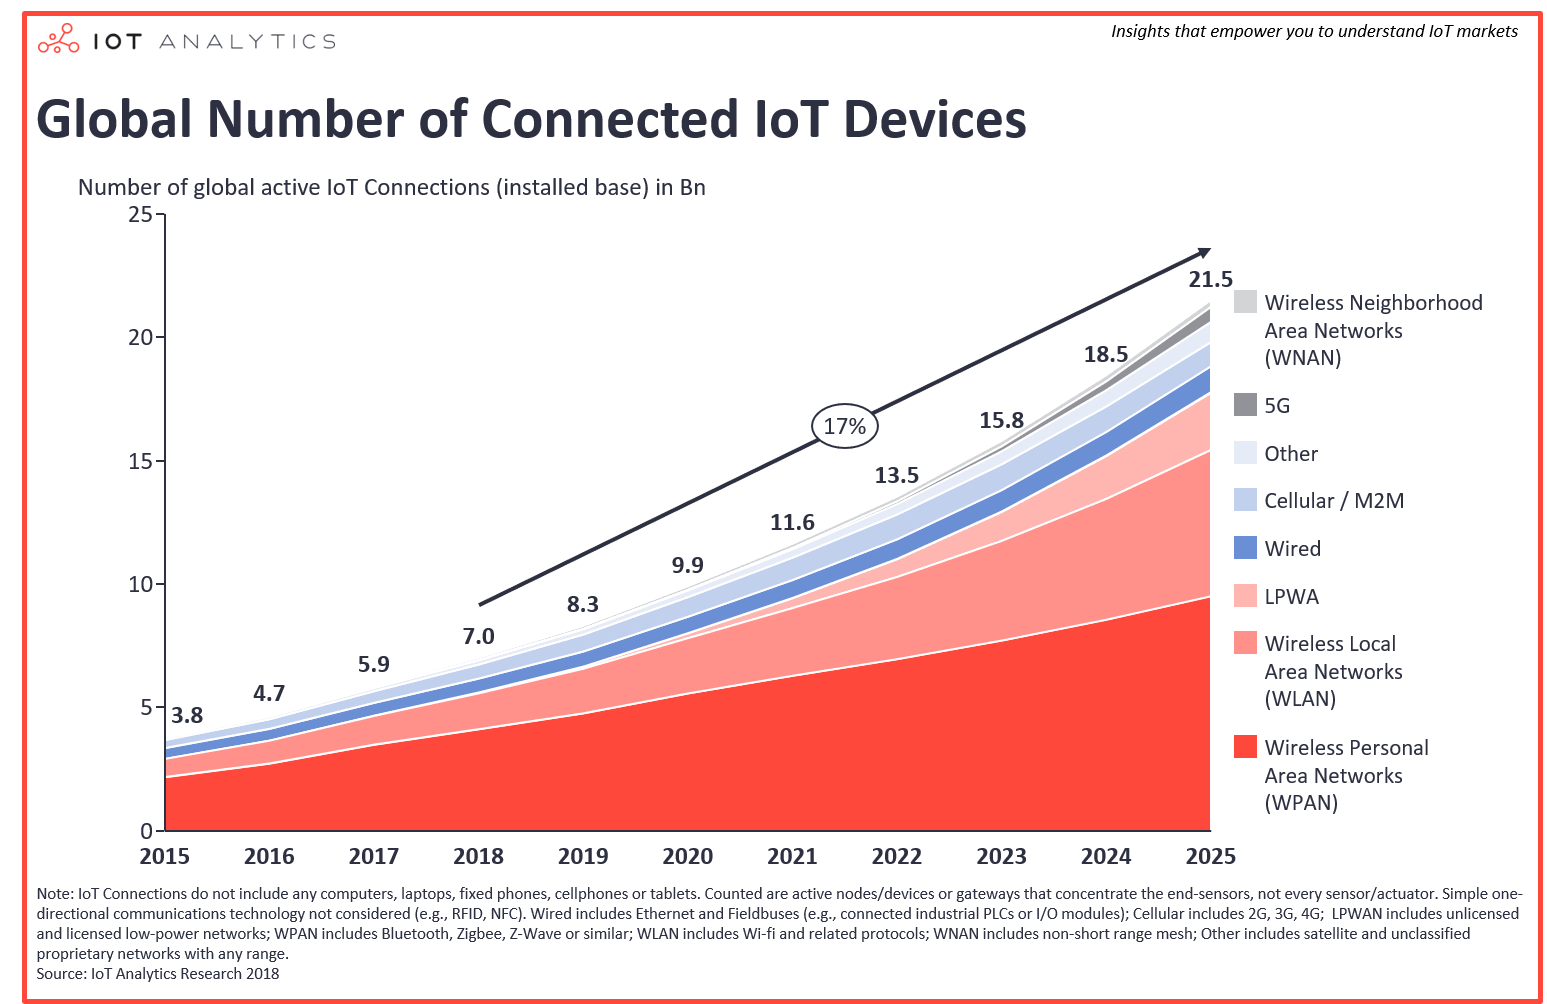 Number-of-IoT-devices-worldwide-2015-2025-Aug-2018-min